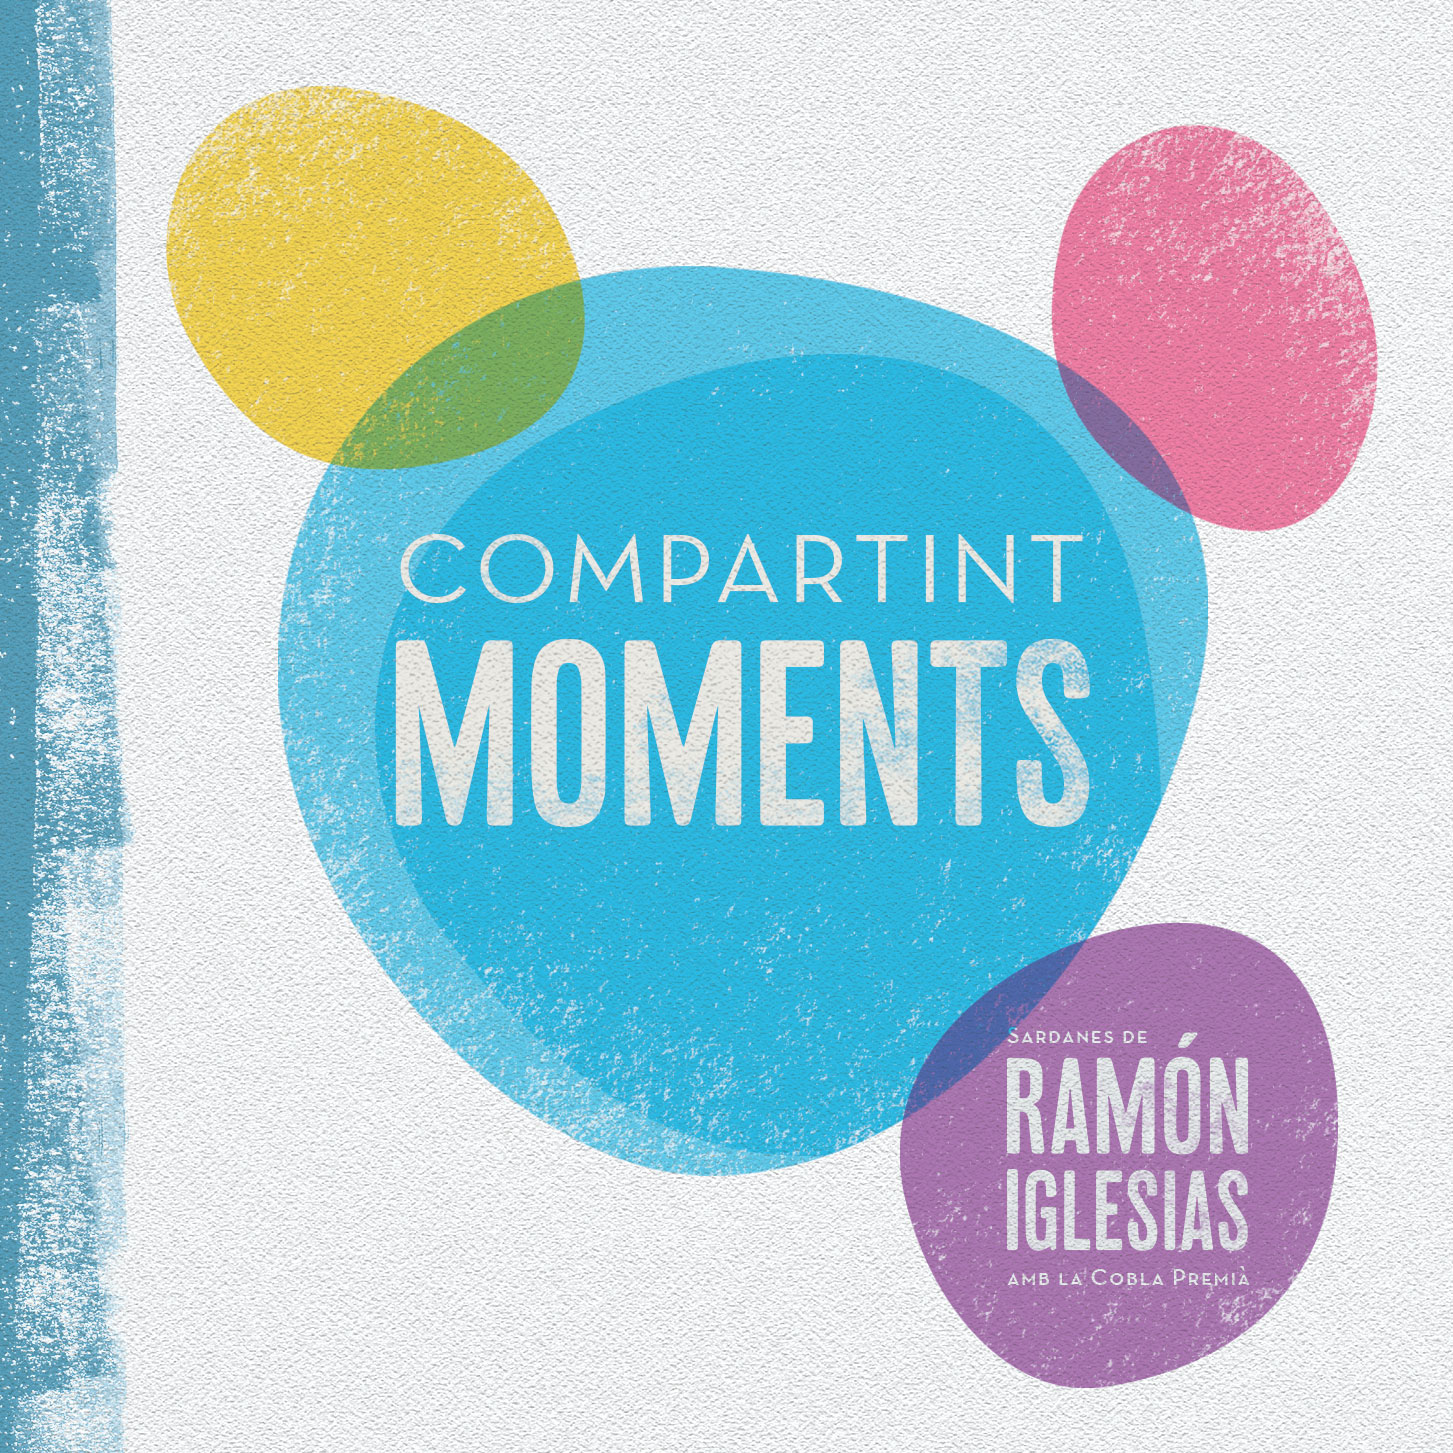 CD Compartint moments